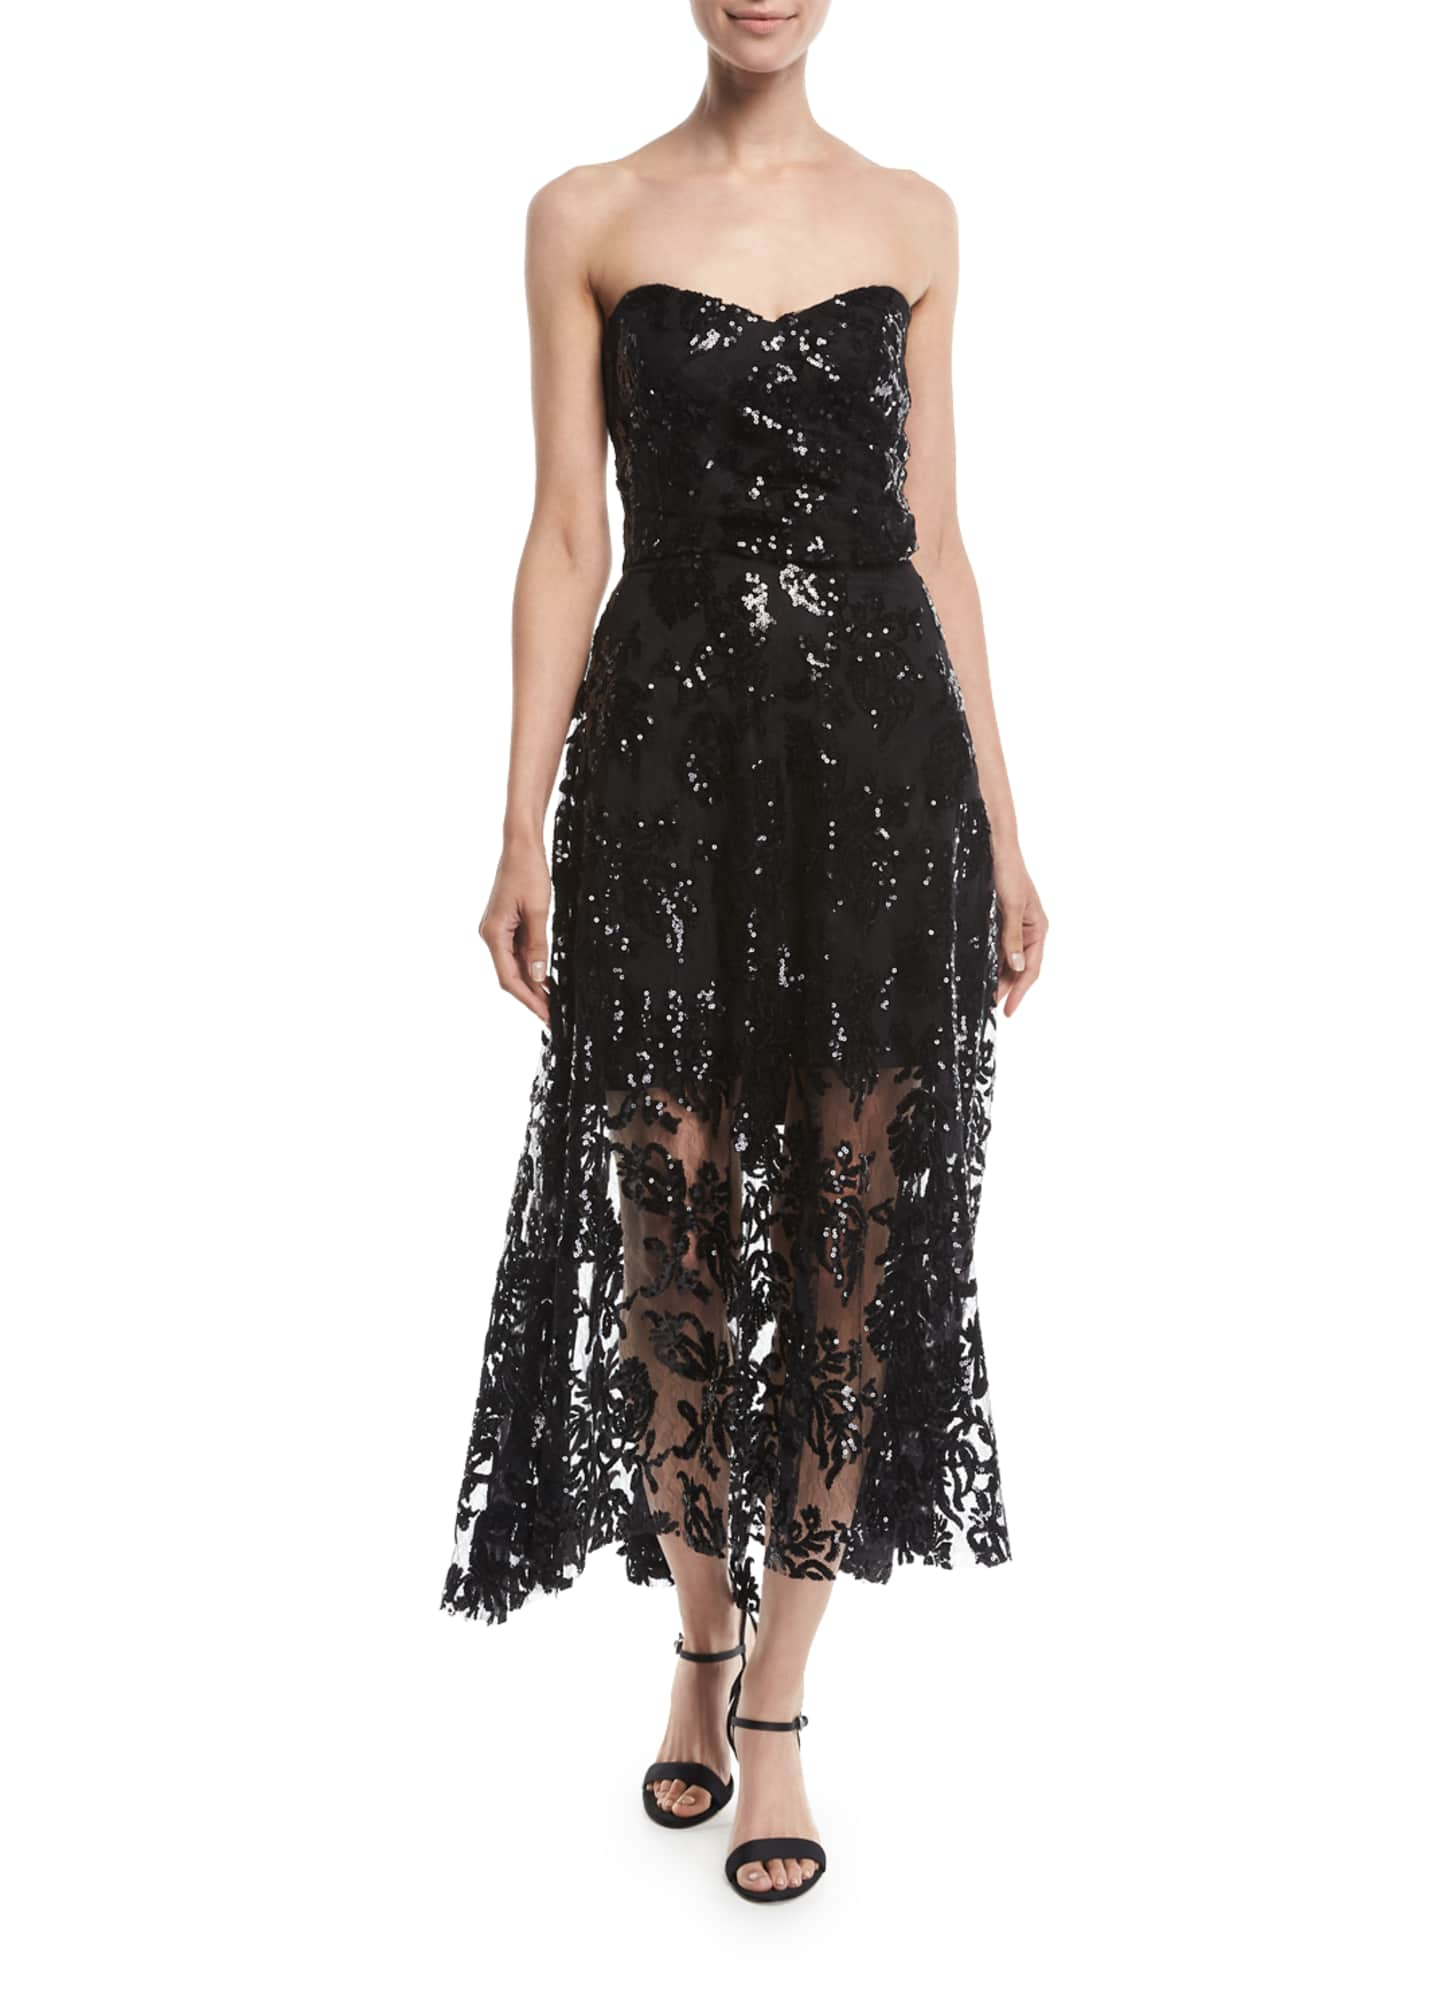 Milly Tori Lace Sequin Embroidered Dress